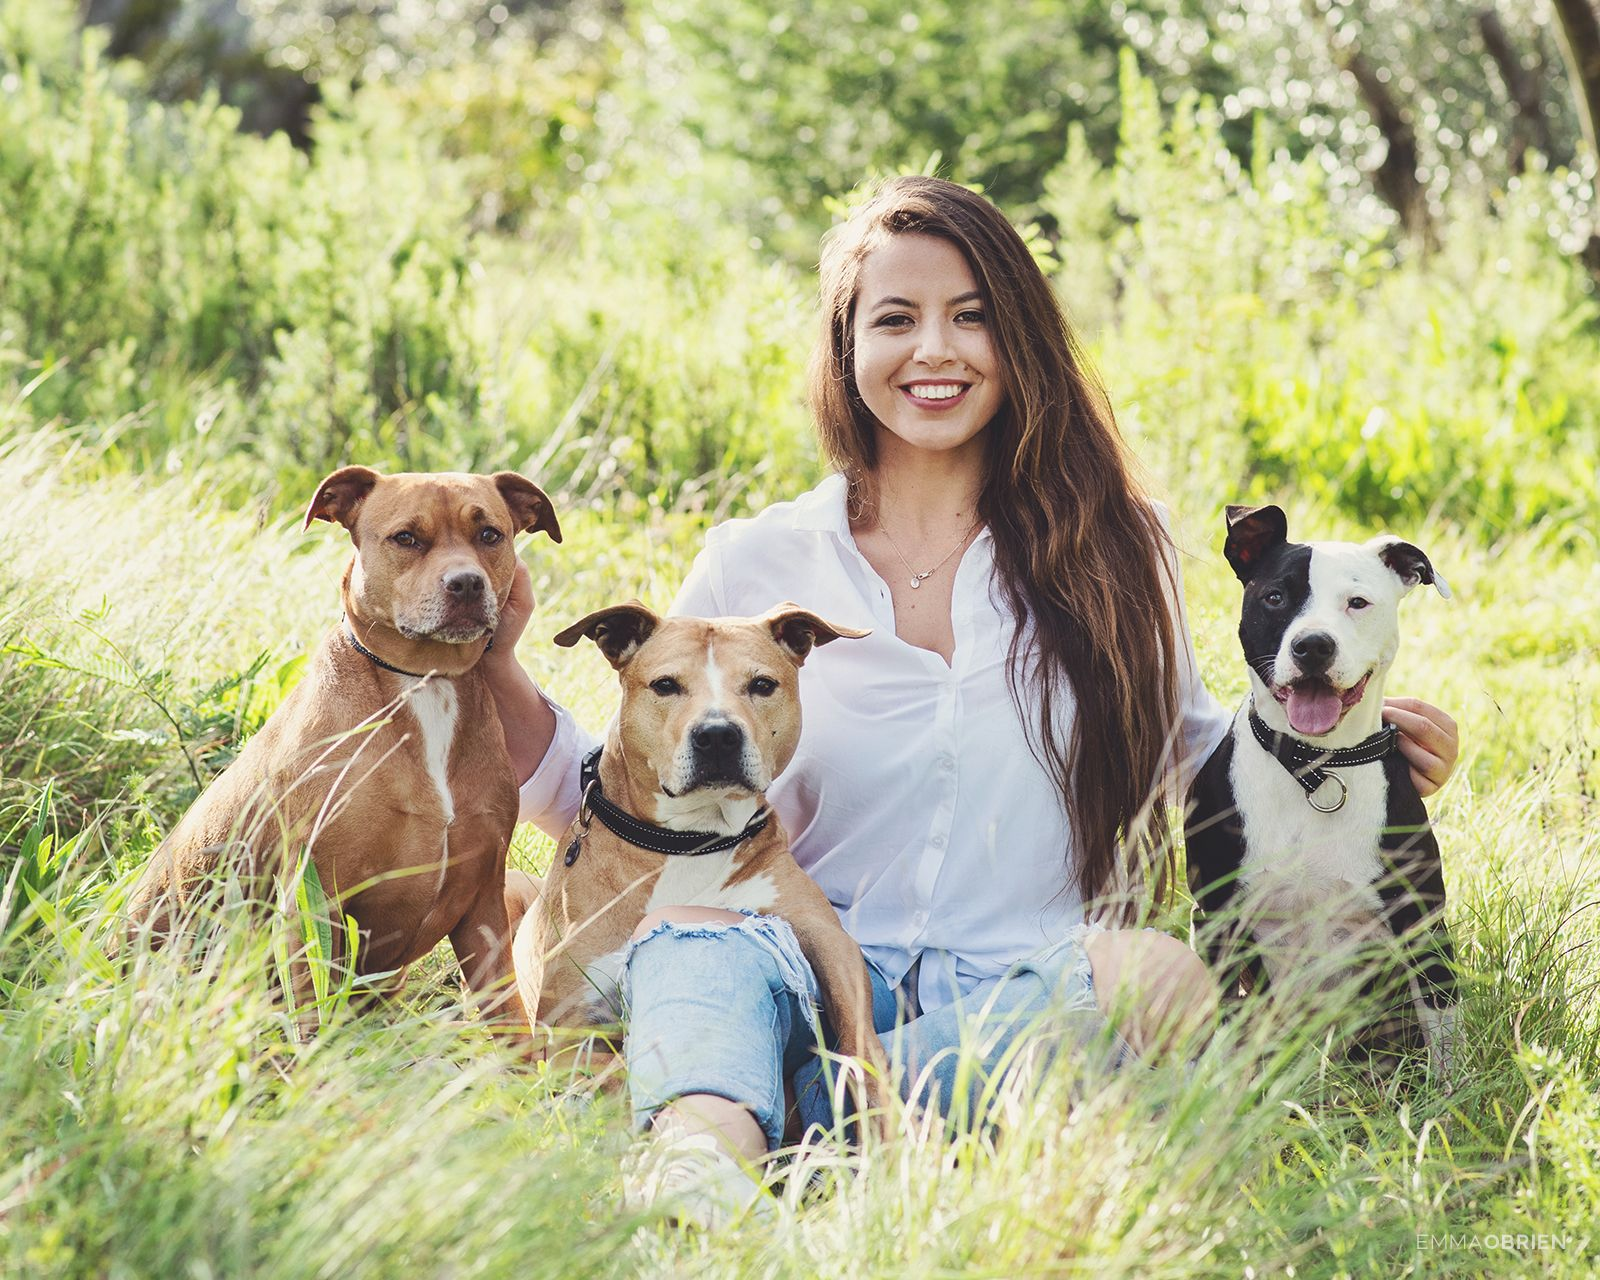 Puppies for adoption in paarl